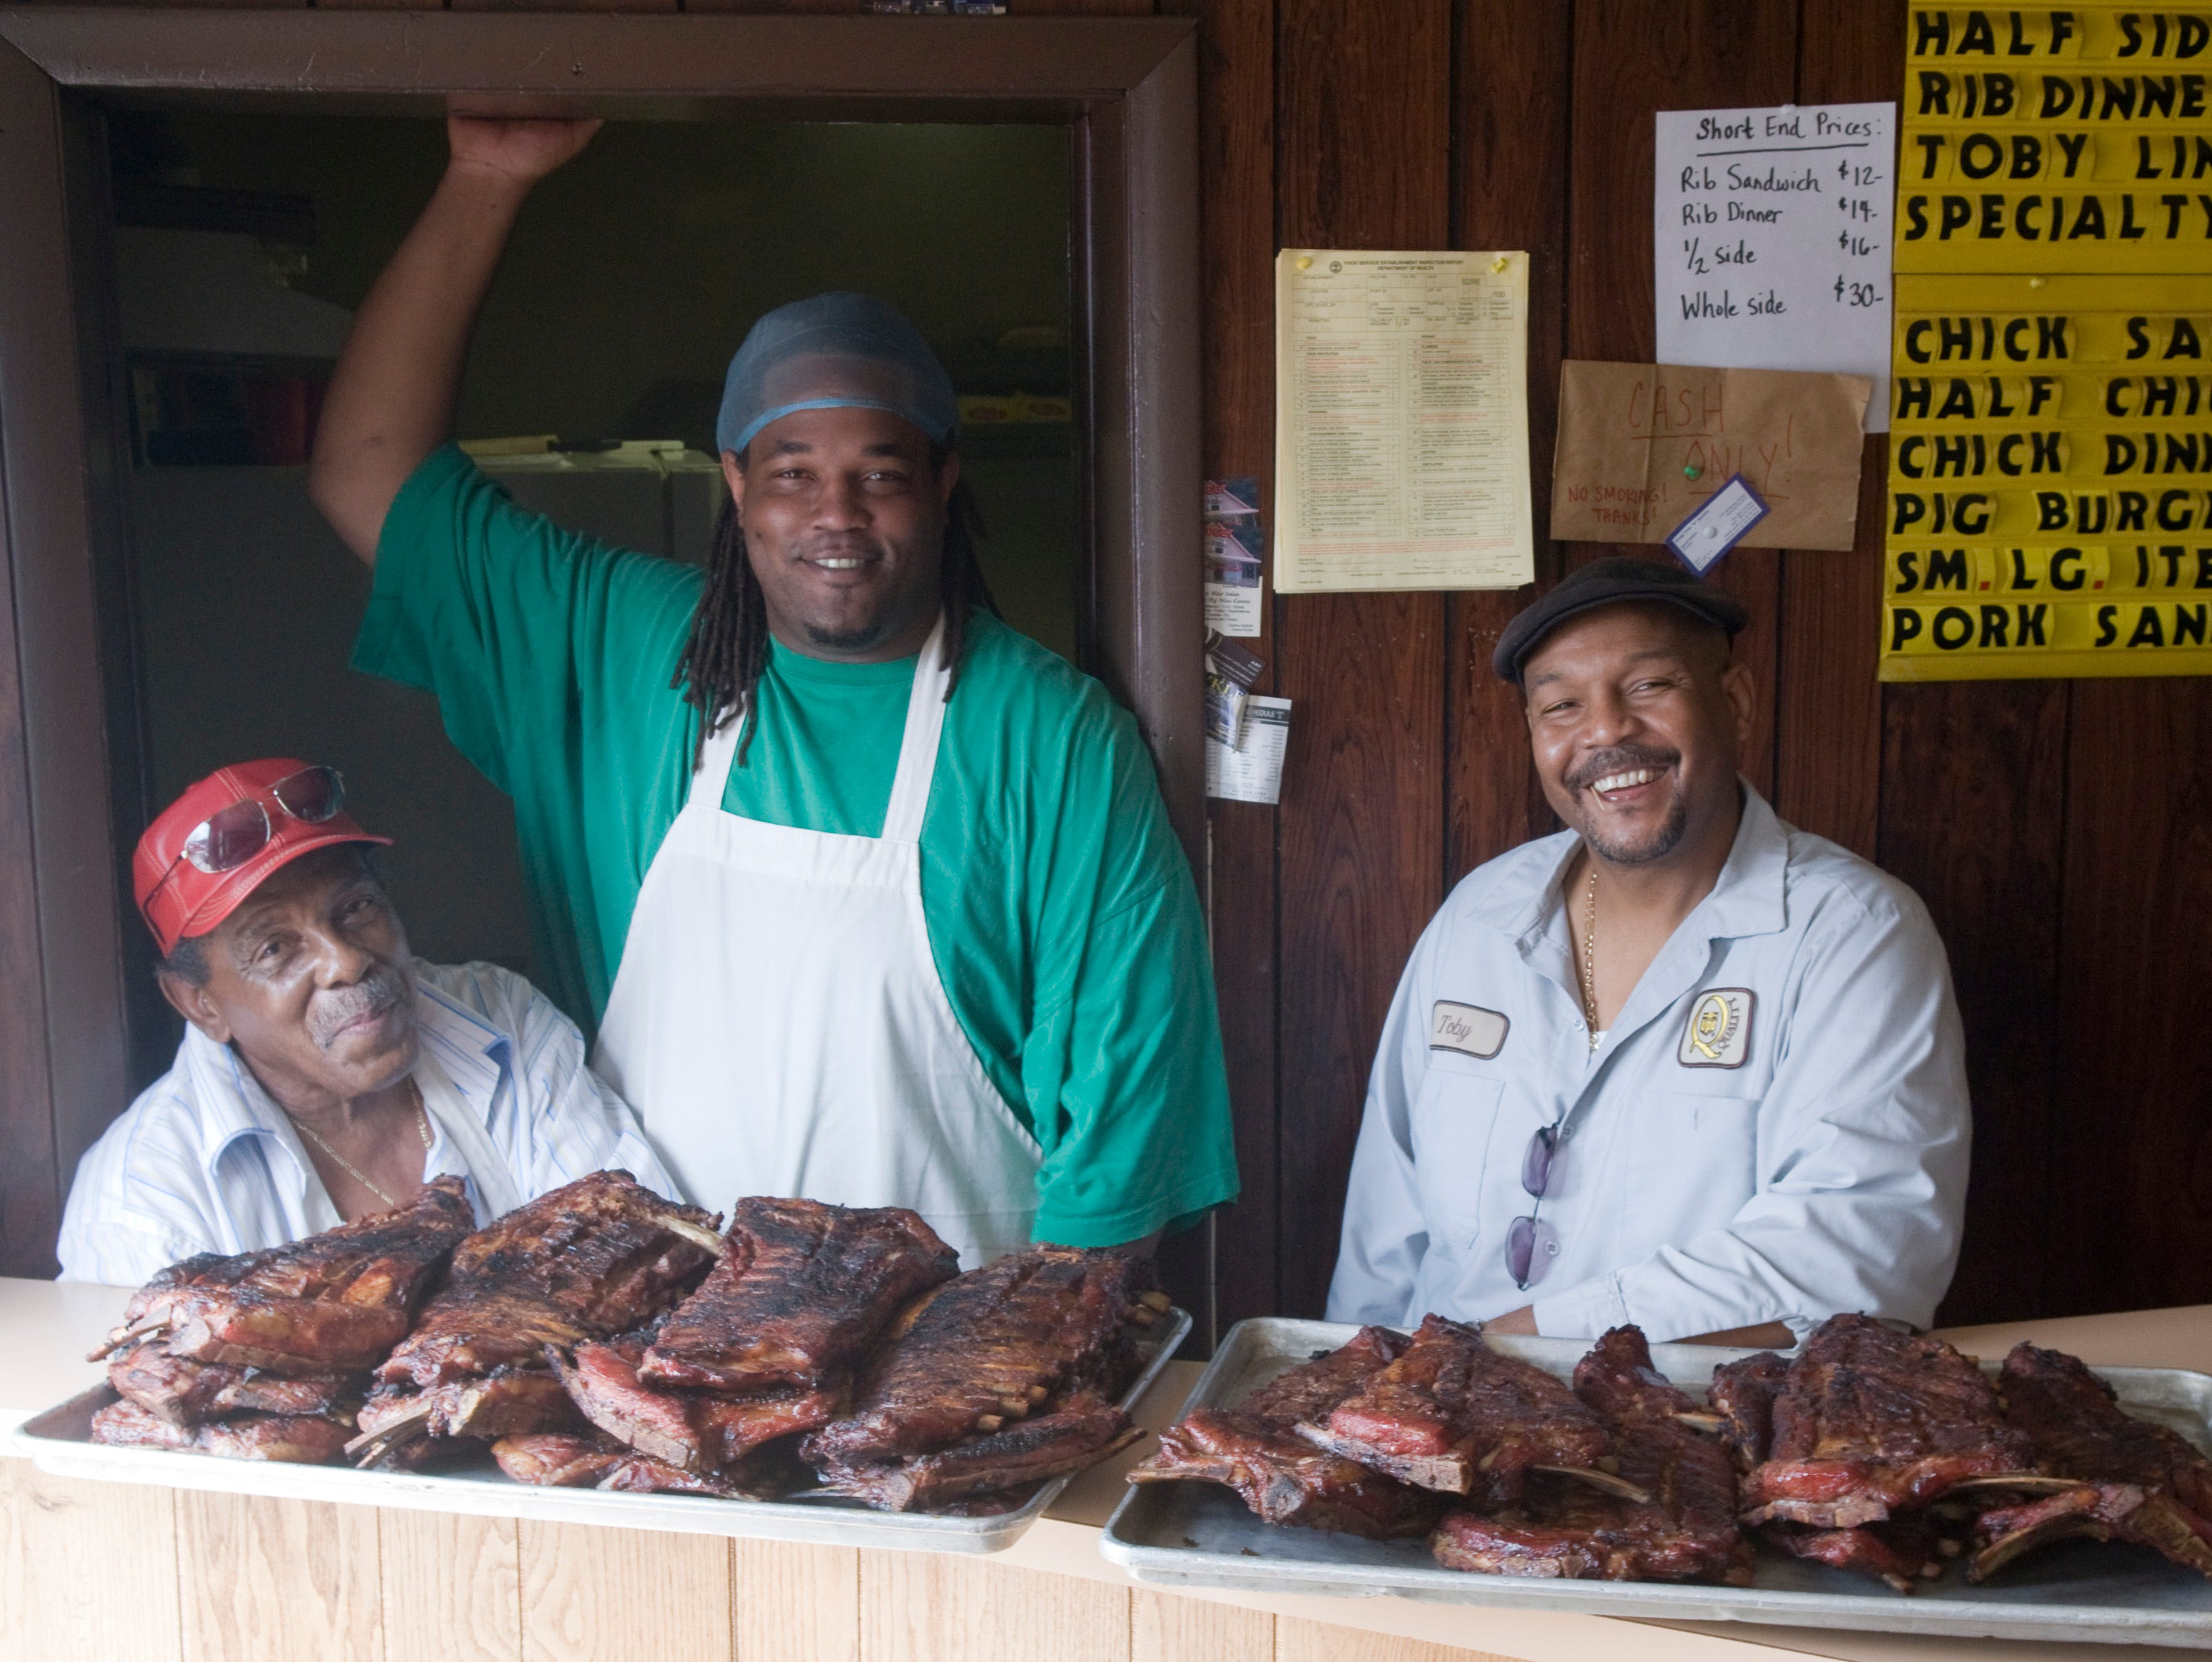 Toby Dixson, right, with his father William Dixson, left, and Wayne McCallie of Dixson's Barbecue in 2010/